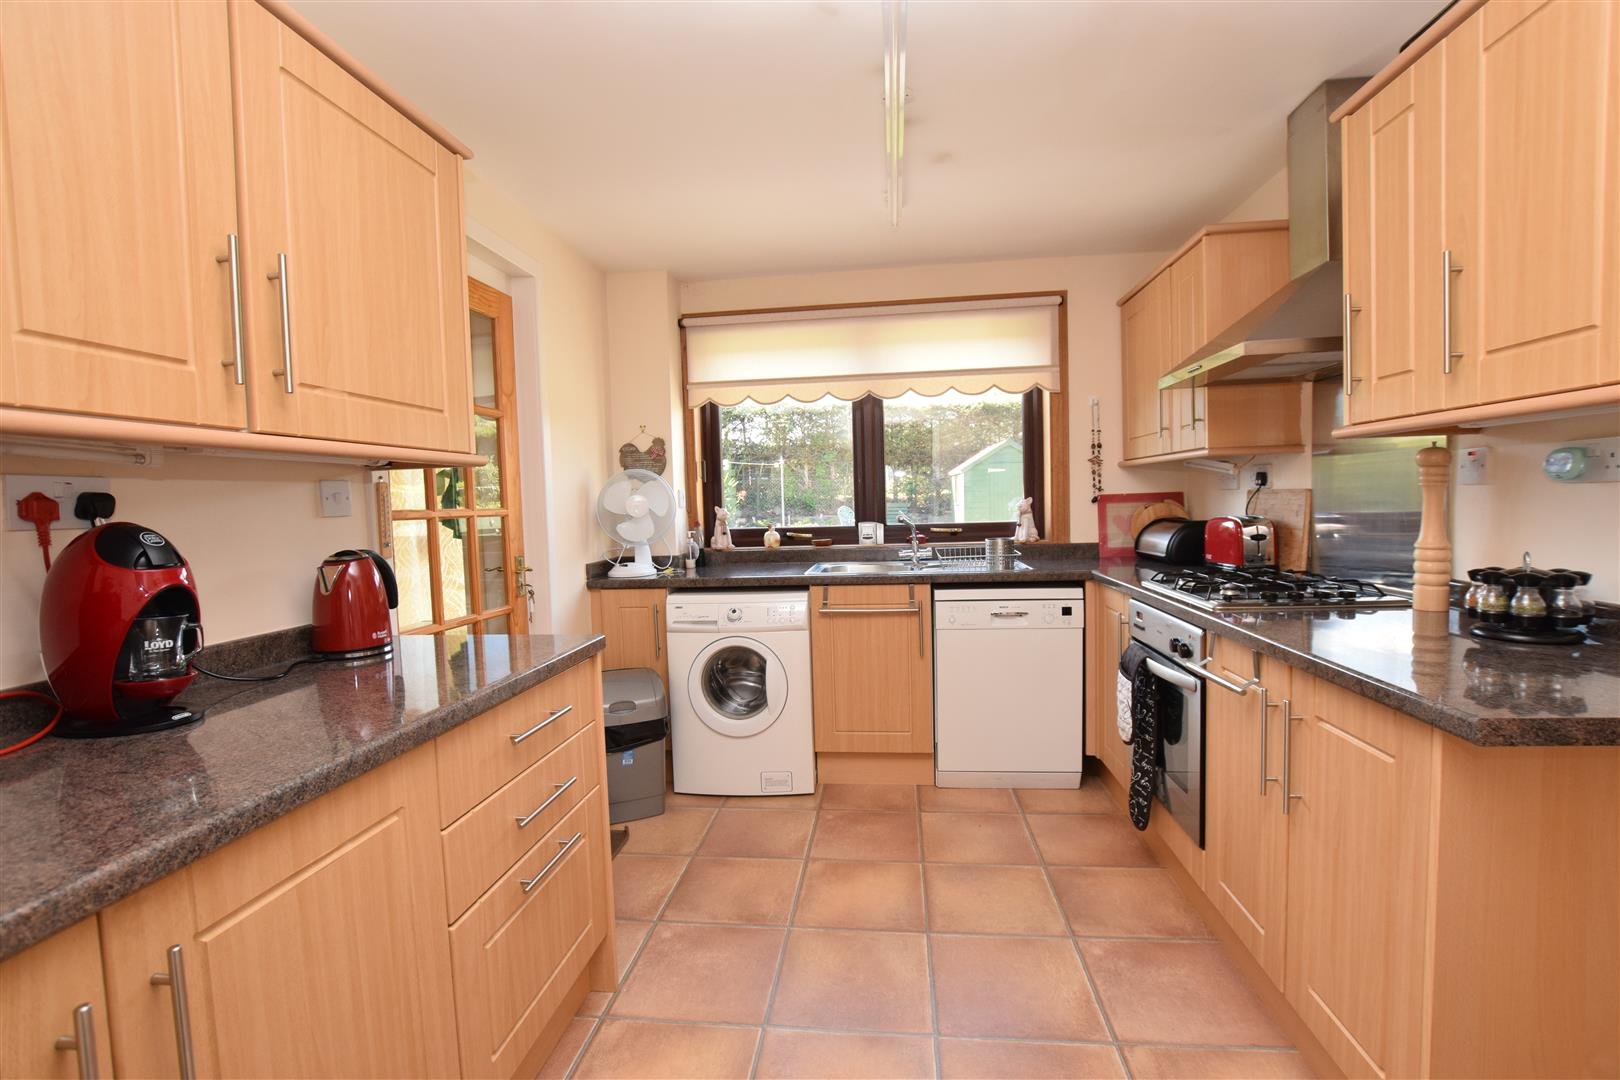 6, Banks Crescent, Crieff, Perthshire, PH7 3SR, UK